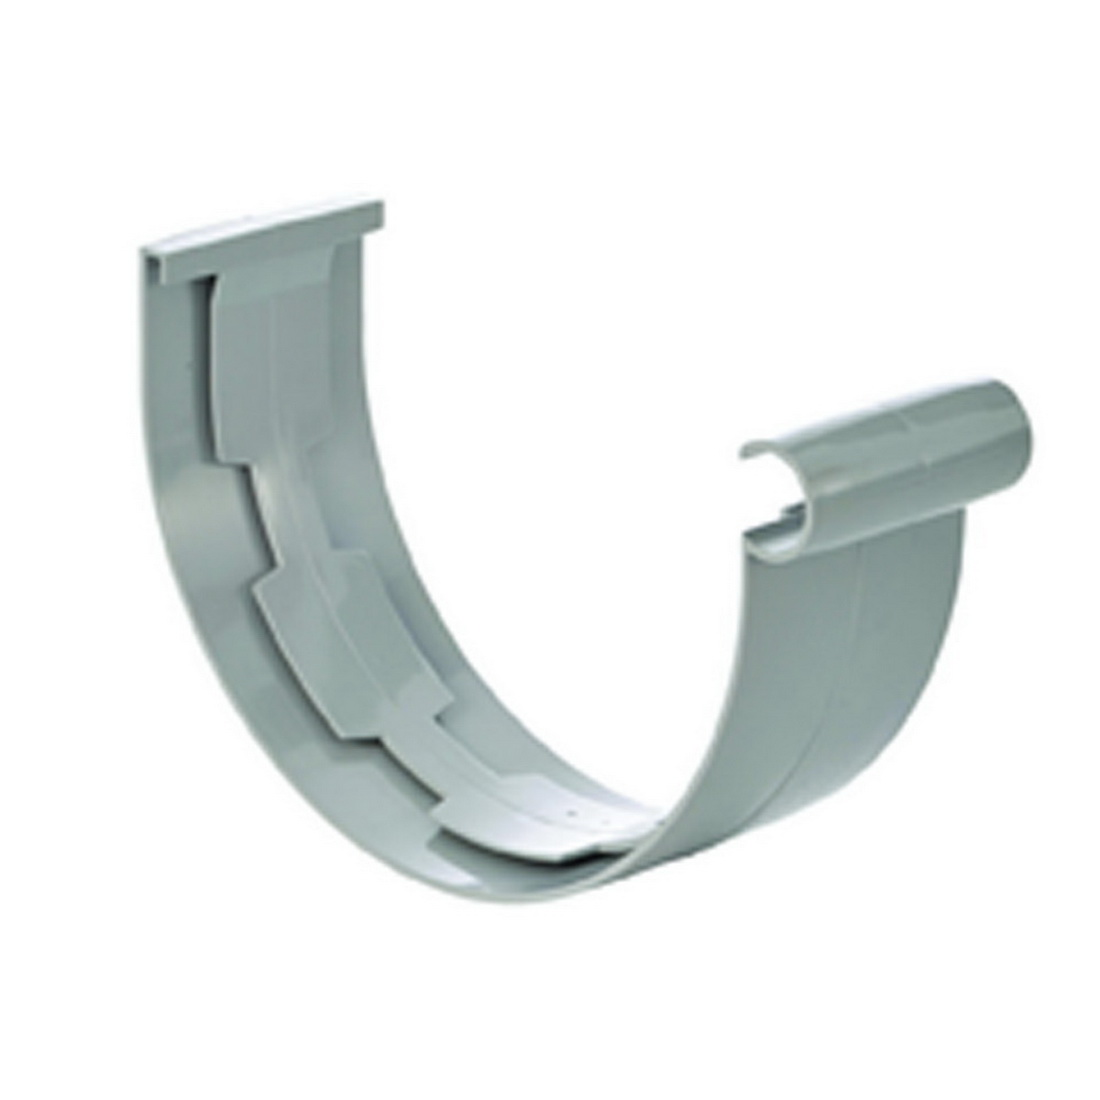 Marley Spouting Joiner For Magnum Spouting & Downpipe System Grey MAG5